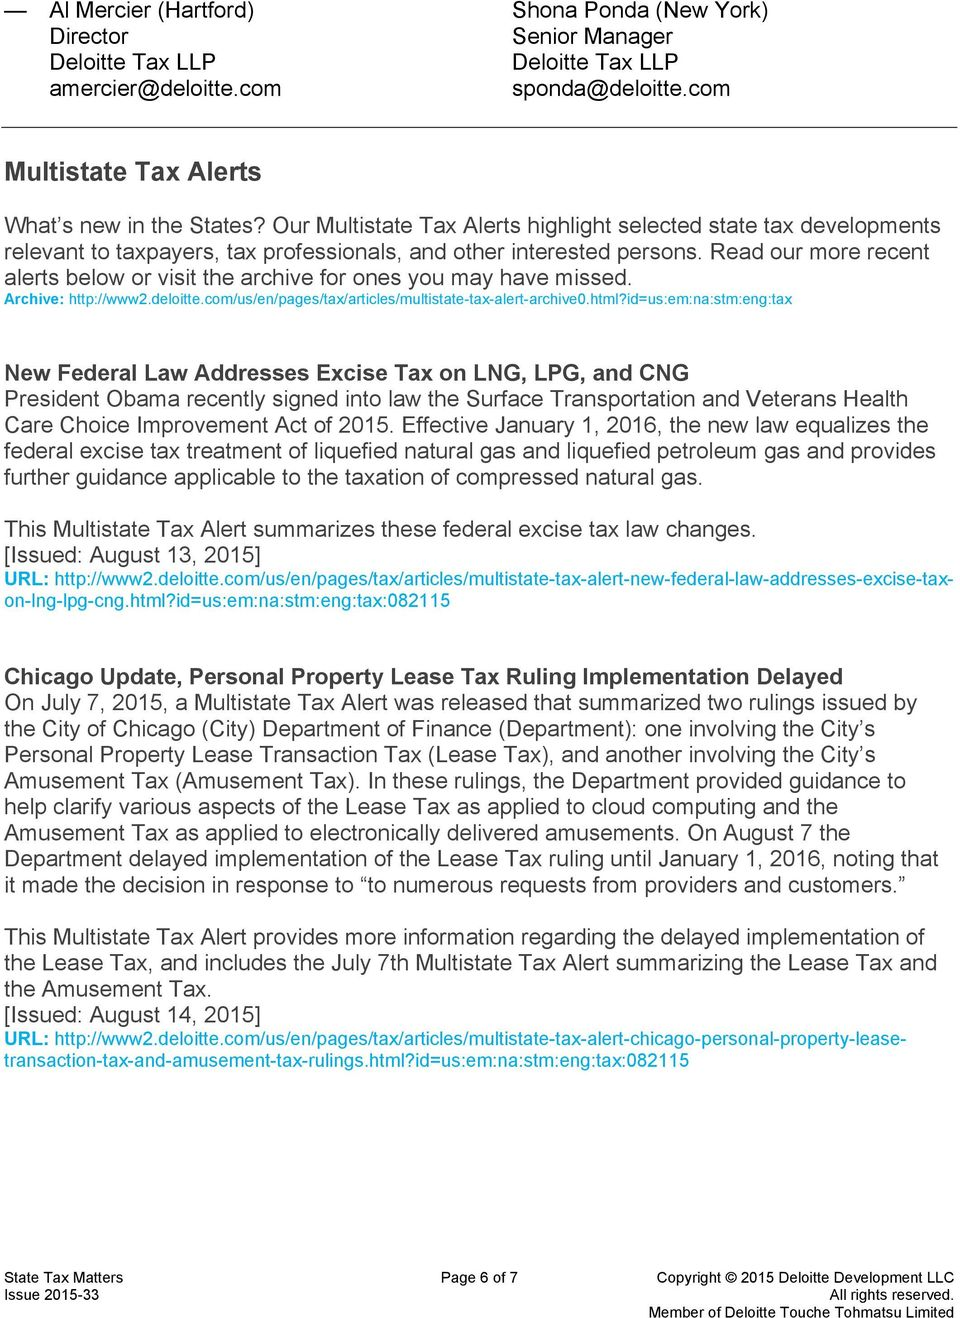 Read our more recent alerts below or visit the archive for ones you may have missed. Archive: http://www2.deloitte.com/us/en/pages/tax/articles/multistate-tax-alert-archive0.html?